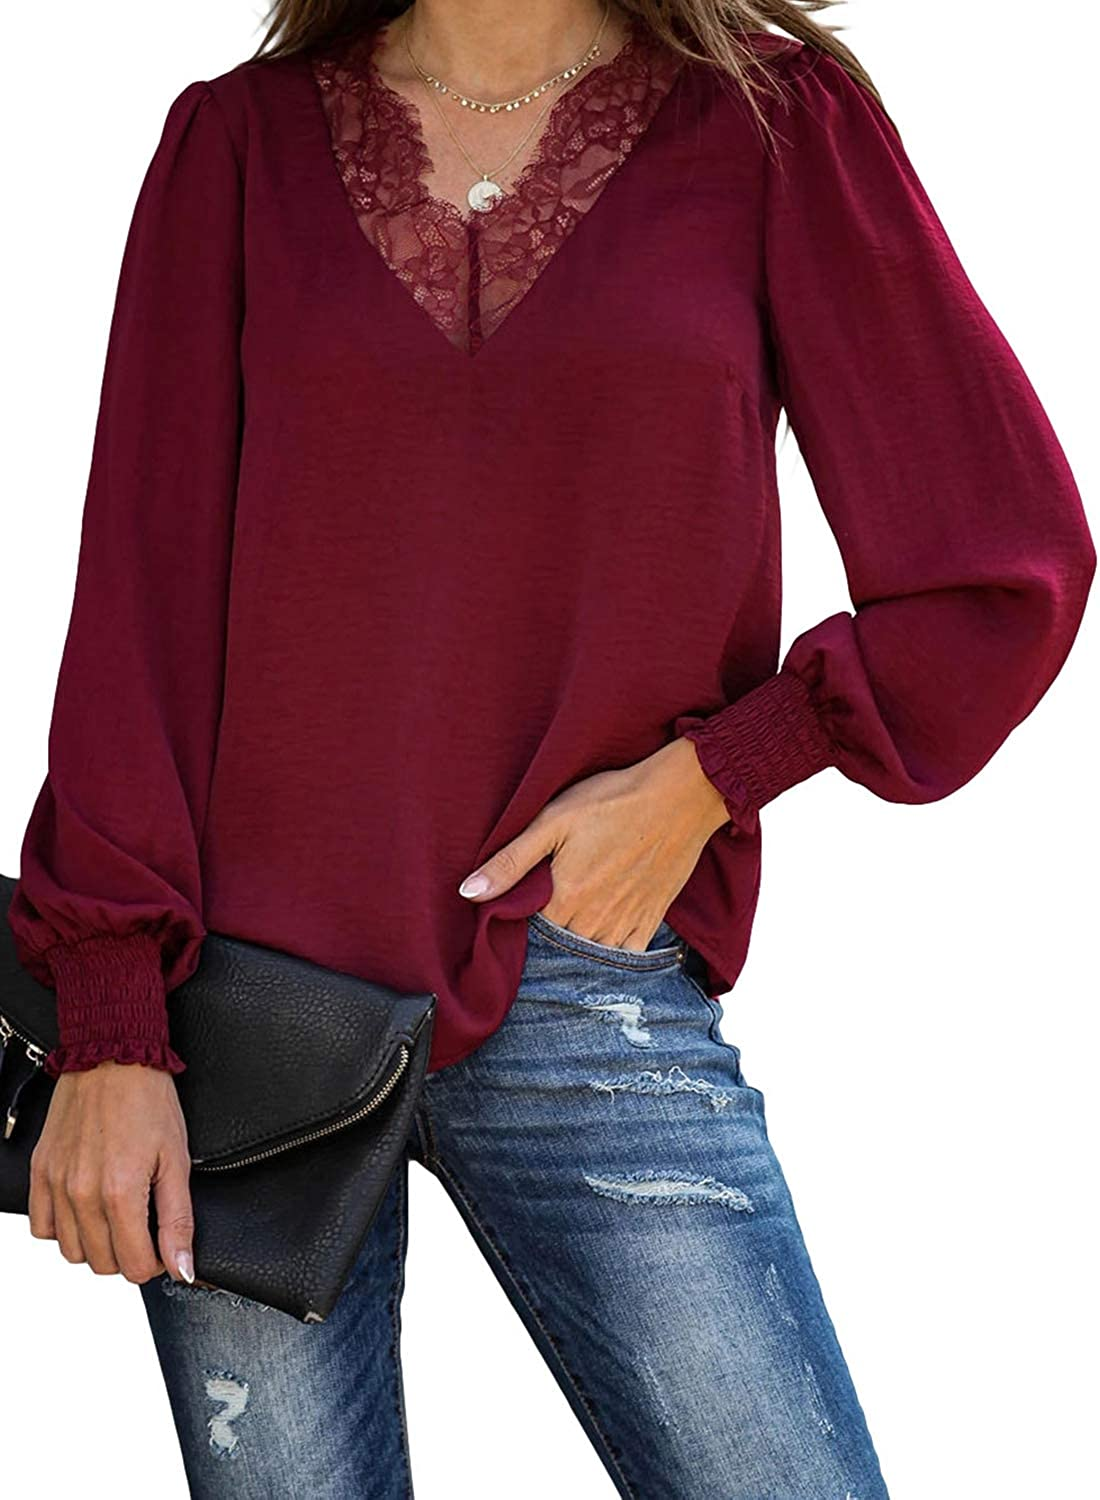 Acelitt Womens Casual Long Sleeve New arrival Lace Neck V Max 72% OFF Tunic Trim Blouse